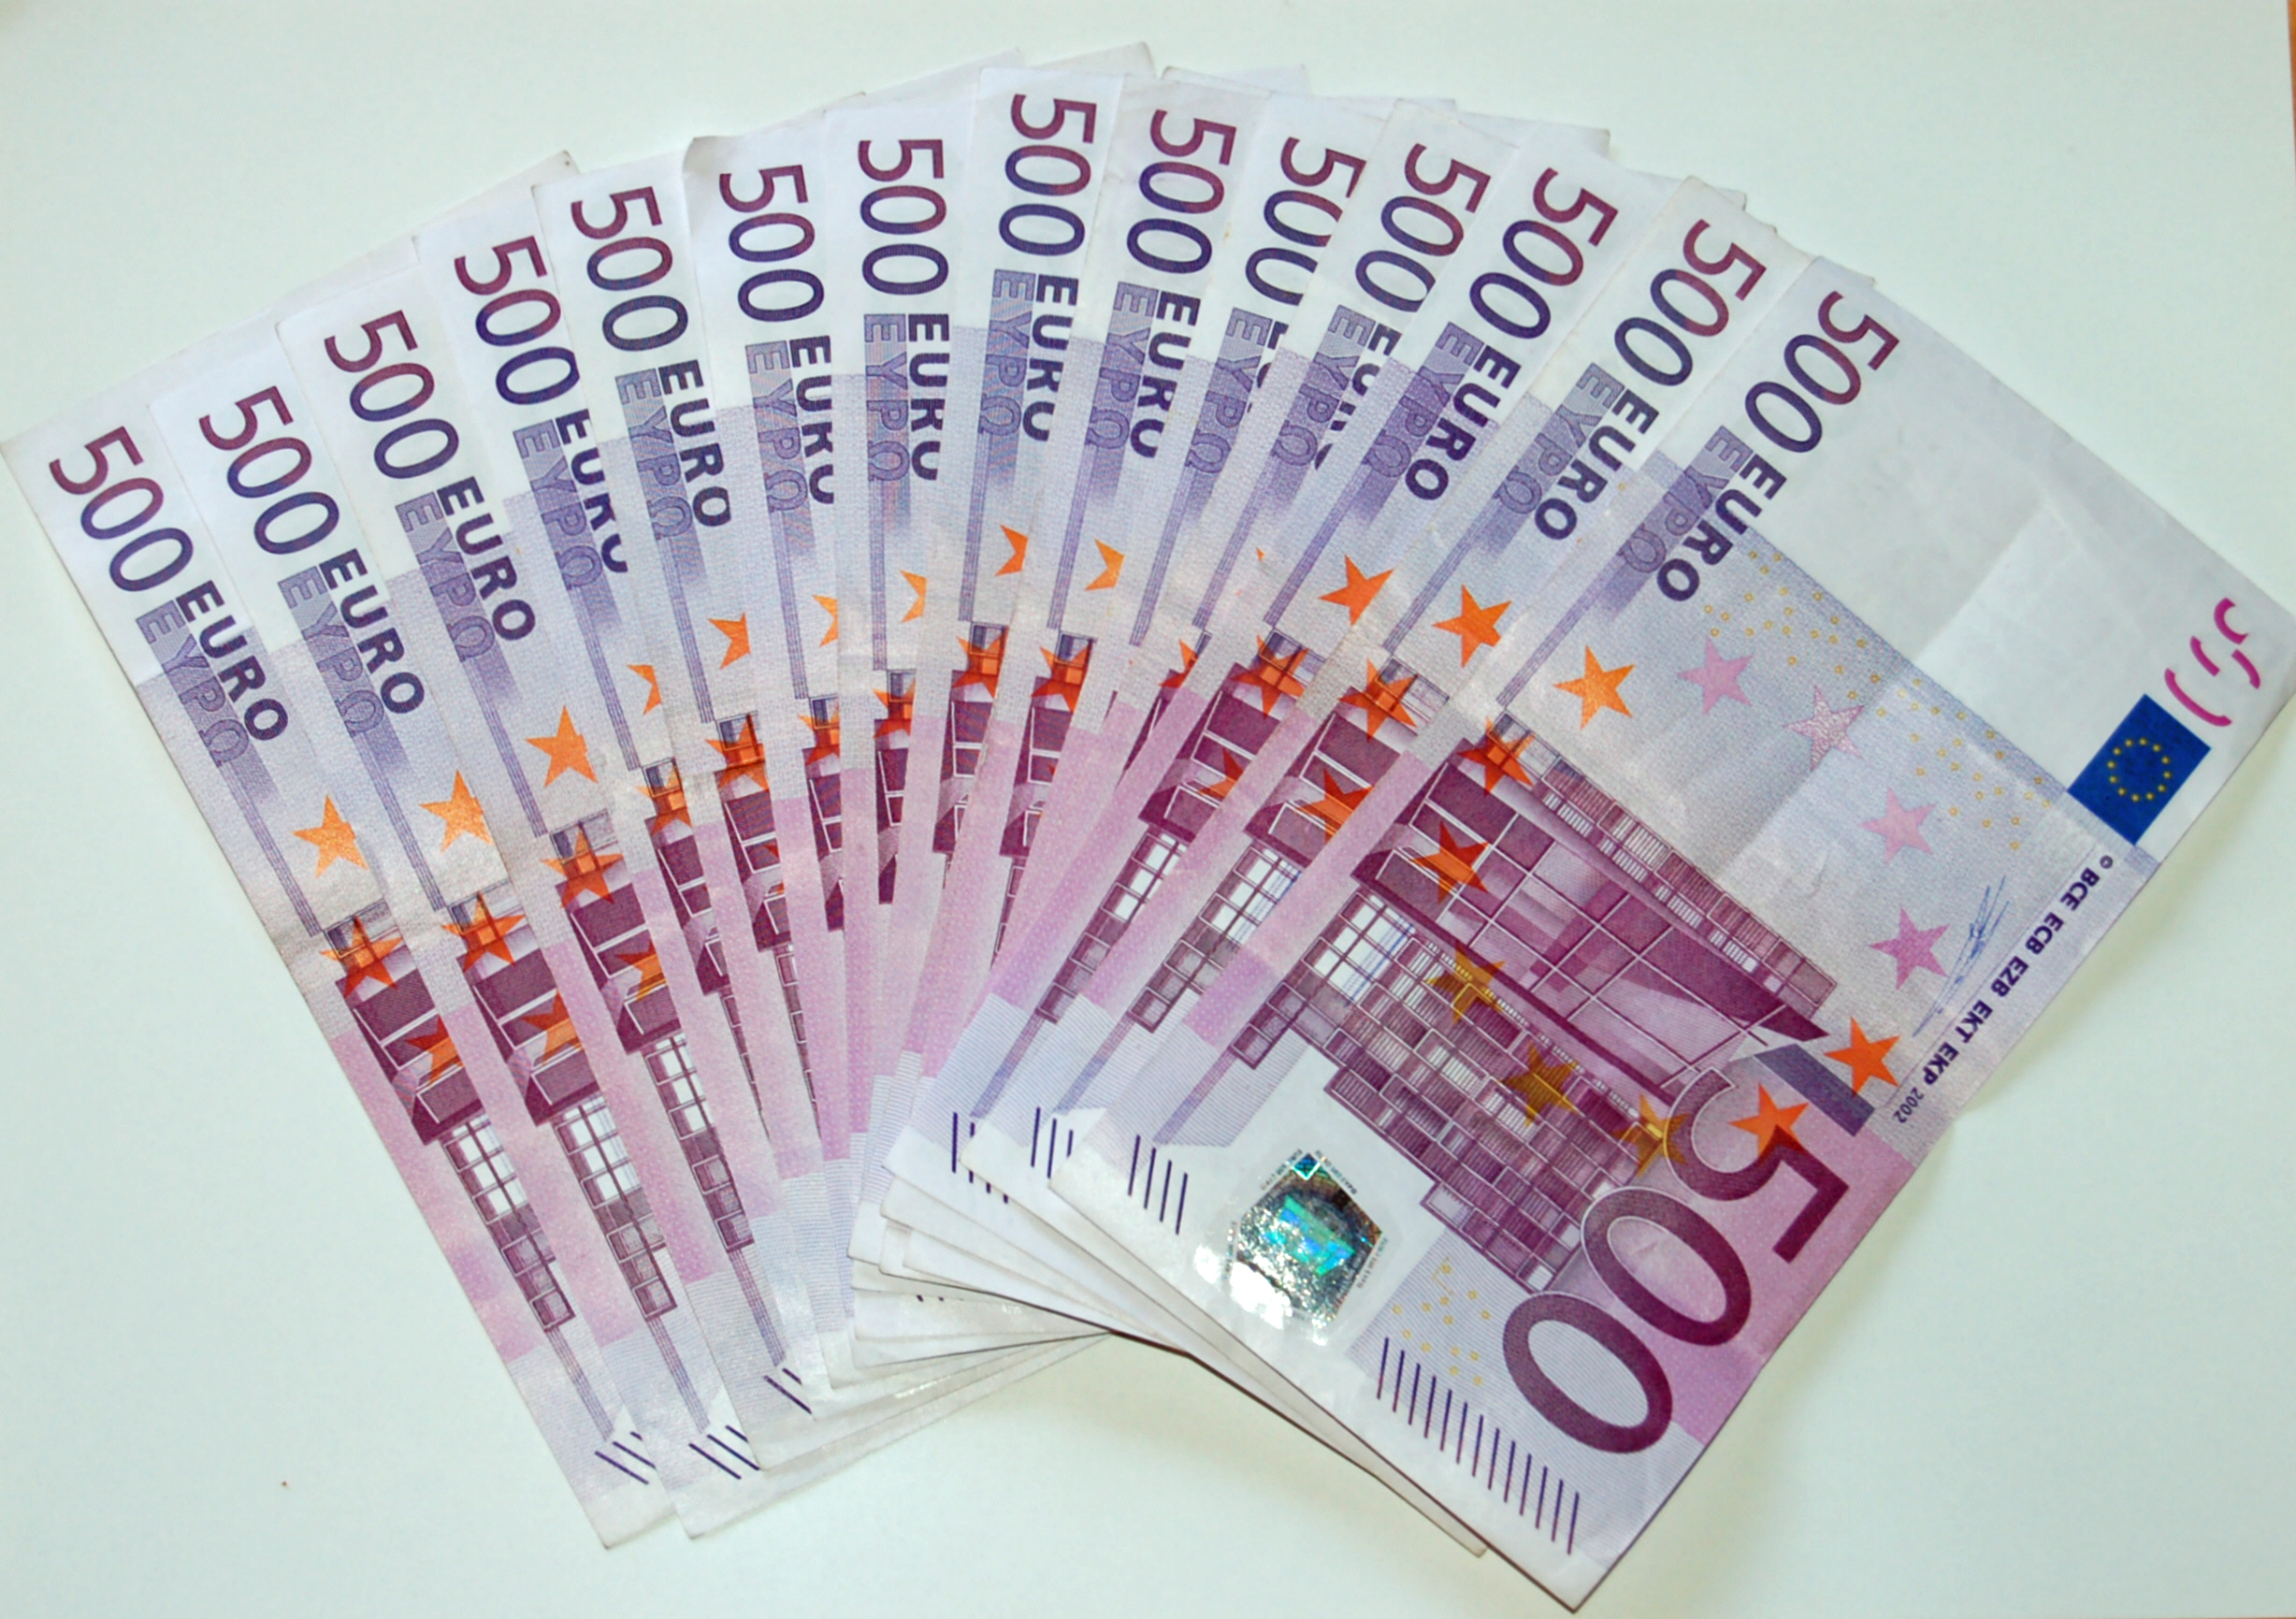 500 euro note - Wikipedia, the free encyclopedia